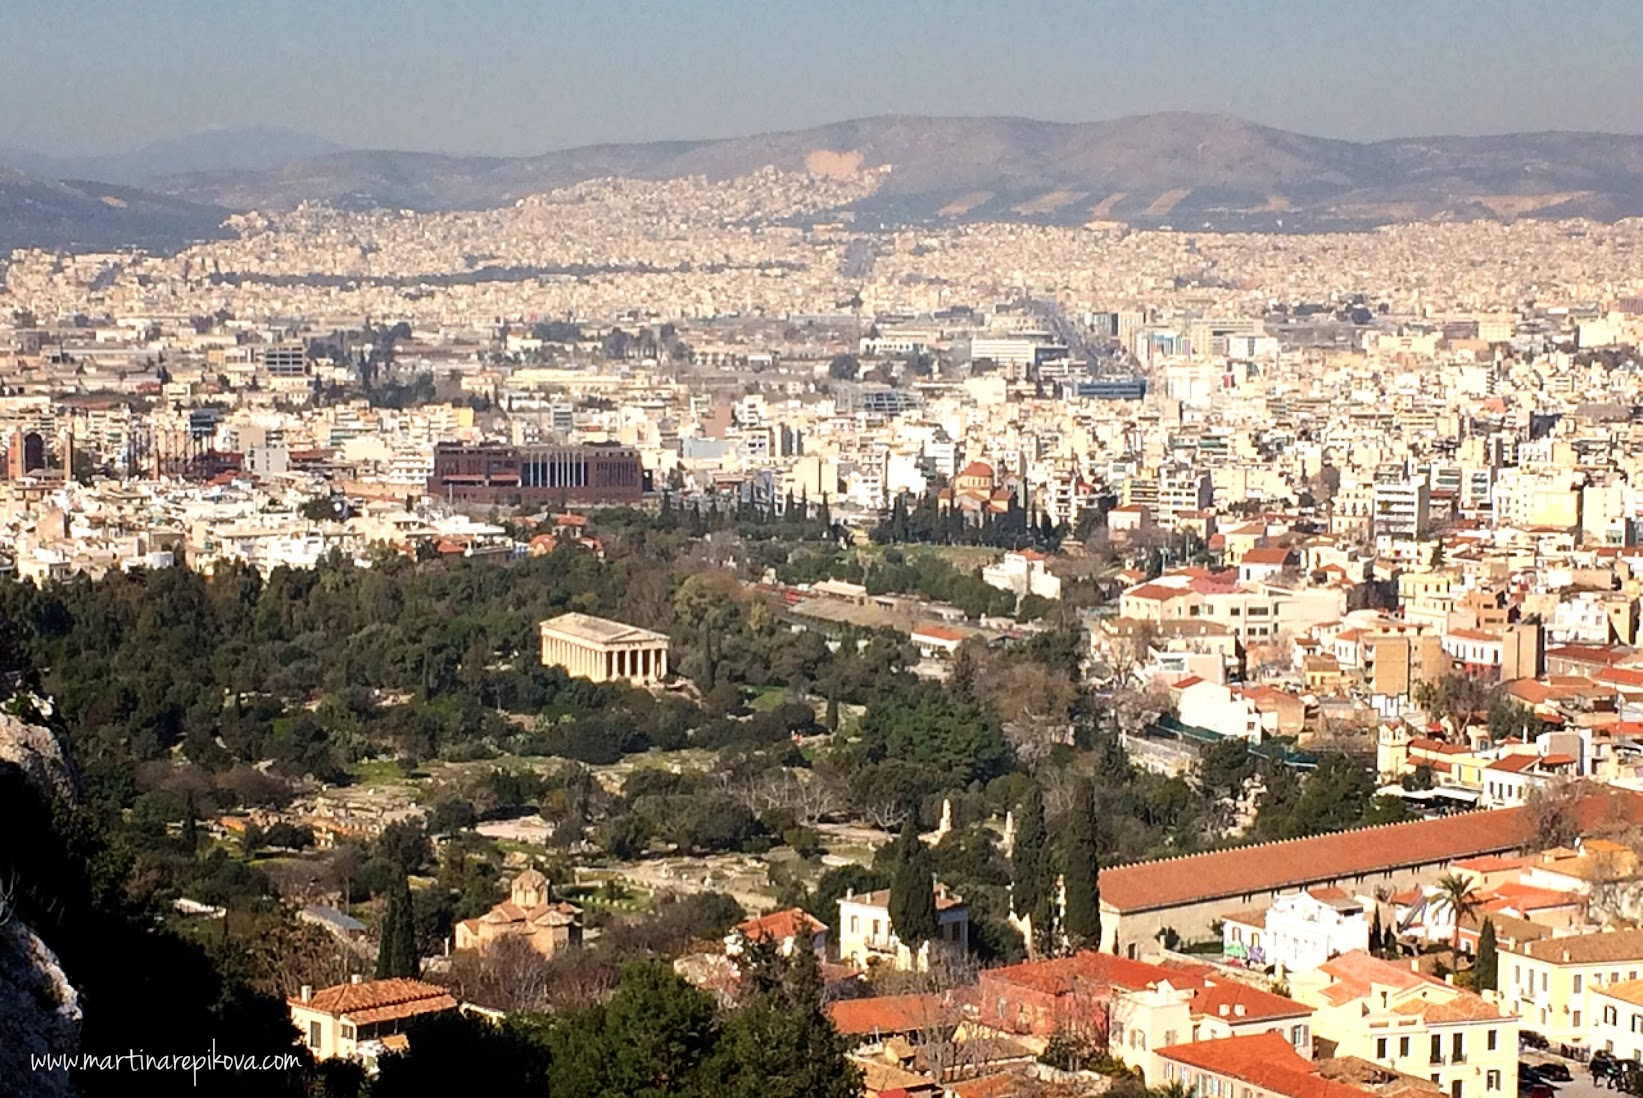 Agora in Athens, Greece with the Temple of Hephaestos (centre) and Stoa of Attalos (bottom right)